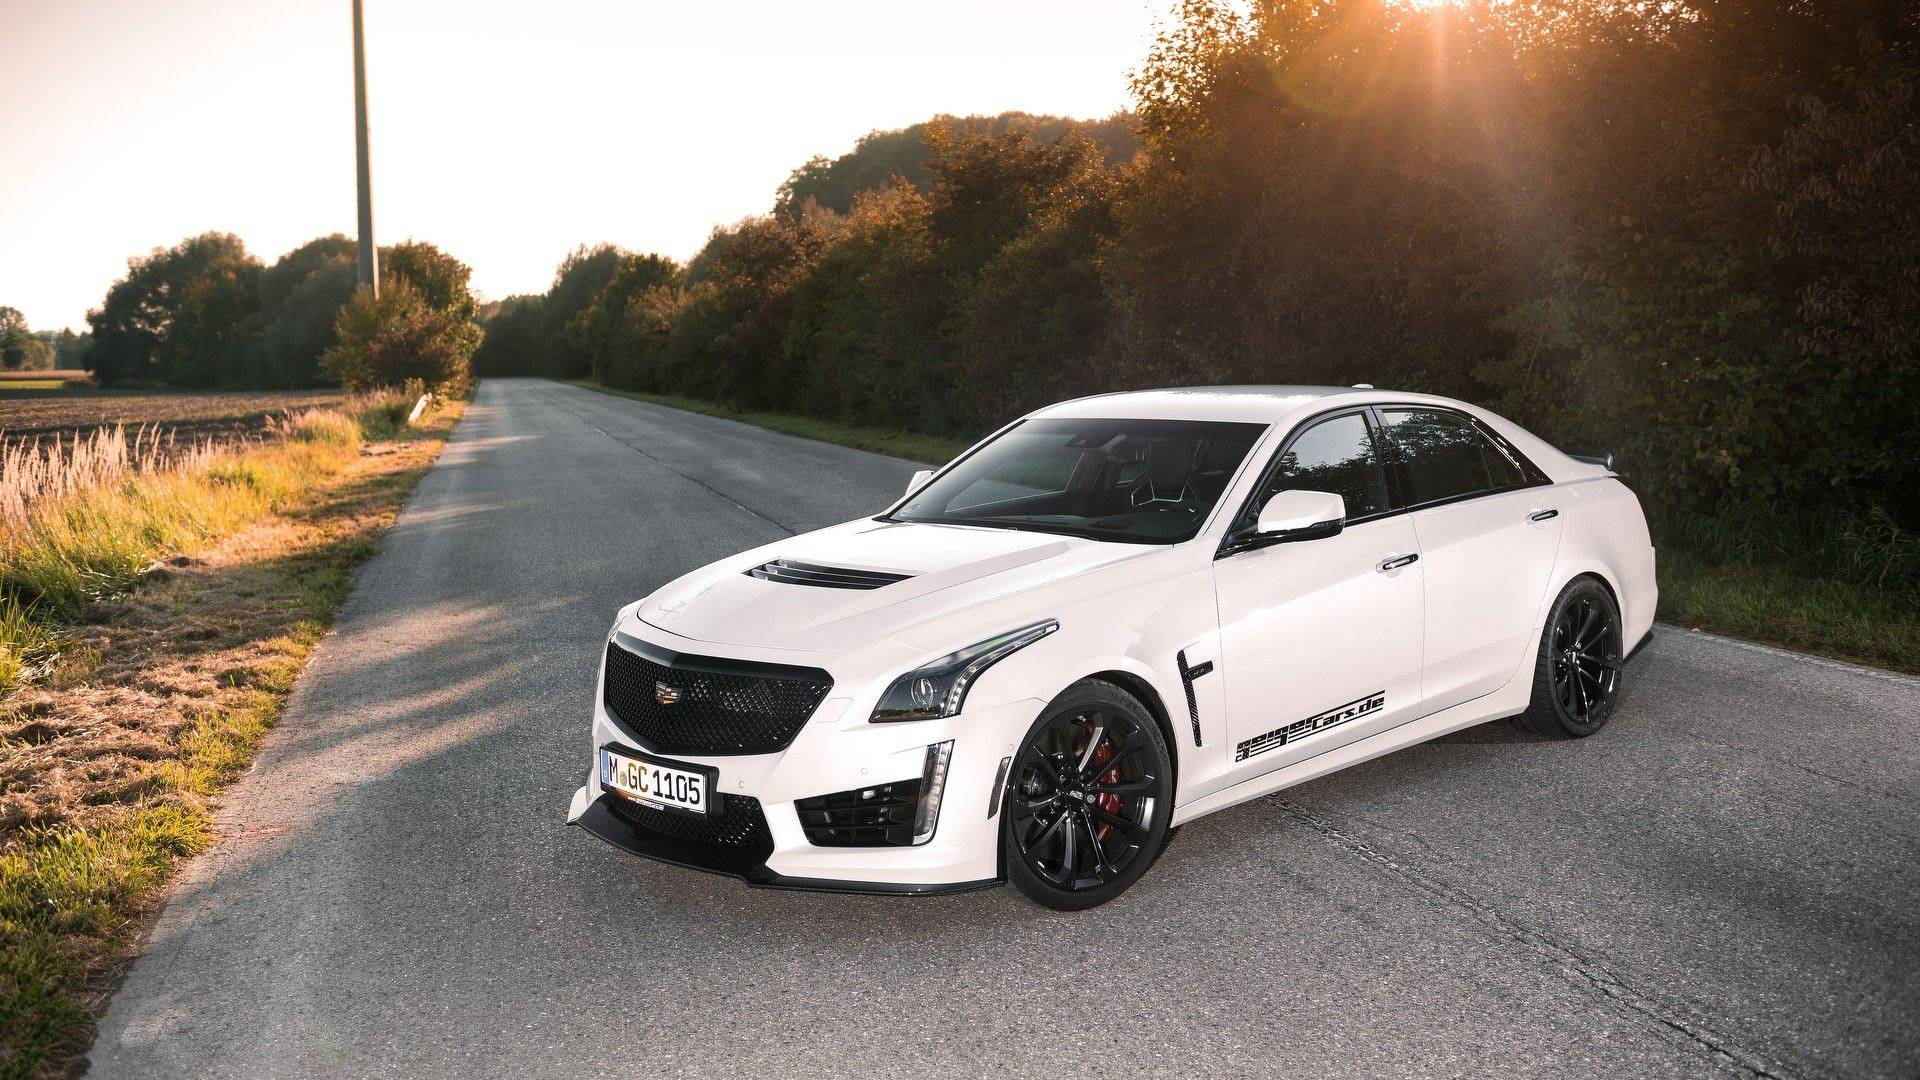 You Can Have This 753 Hp 210 Mph Cadillac Cts V For E63 Money Largest Engine